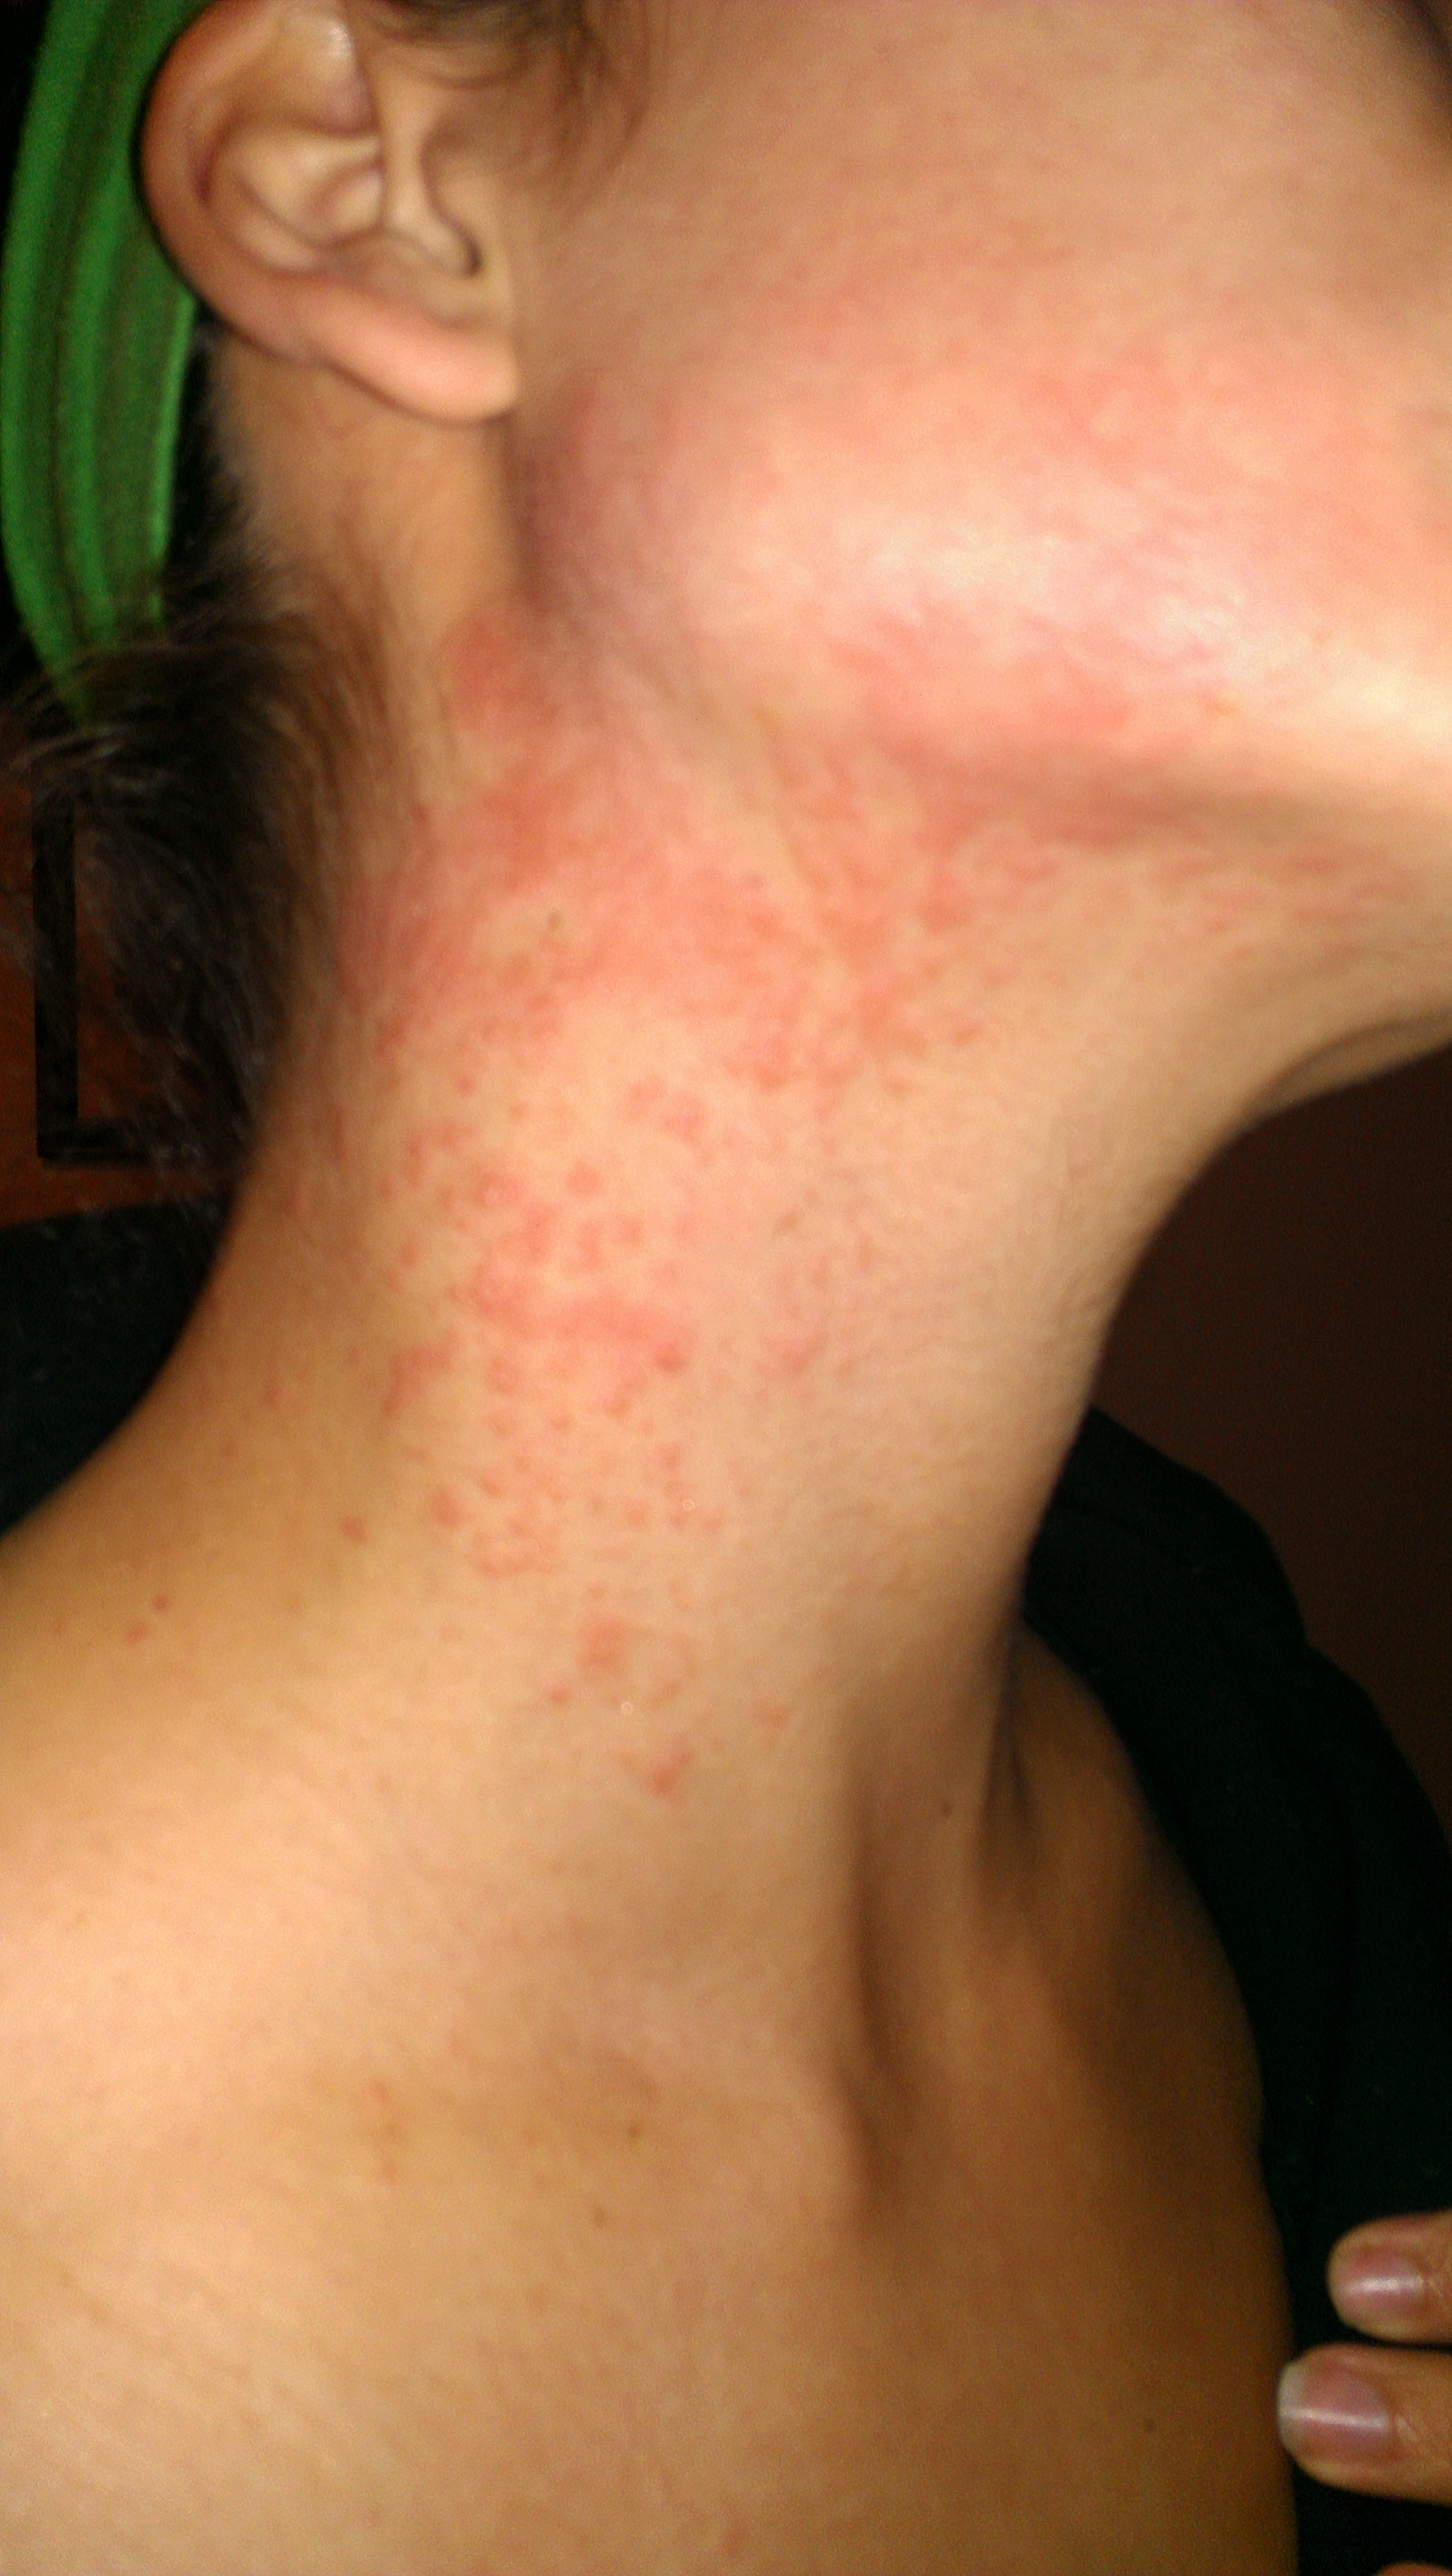 face and neck rash #10